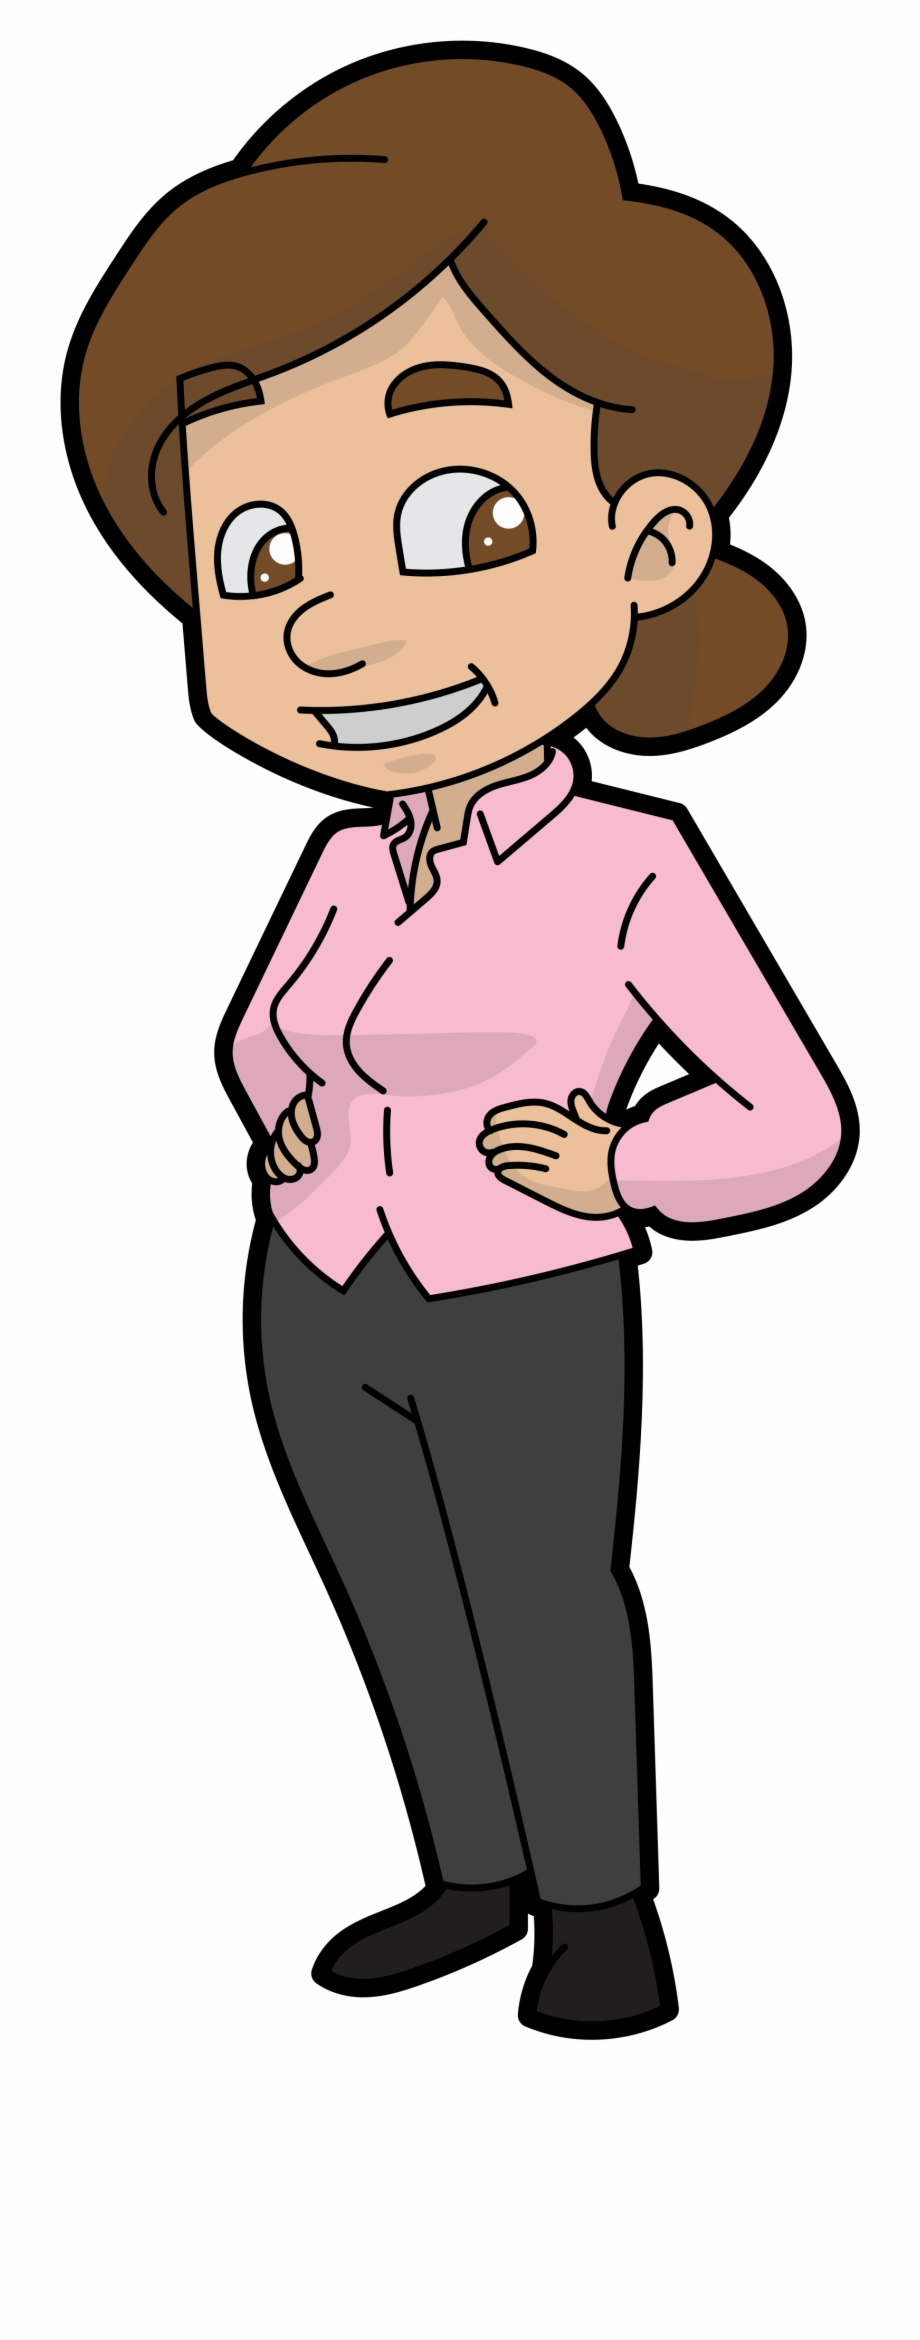 Clipart mothrt clipart free Cartoon Mom Png - Cartoon Mother Clipart Free PNG Images & Clipart ... clipart free